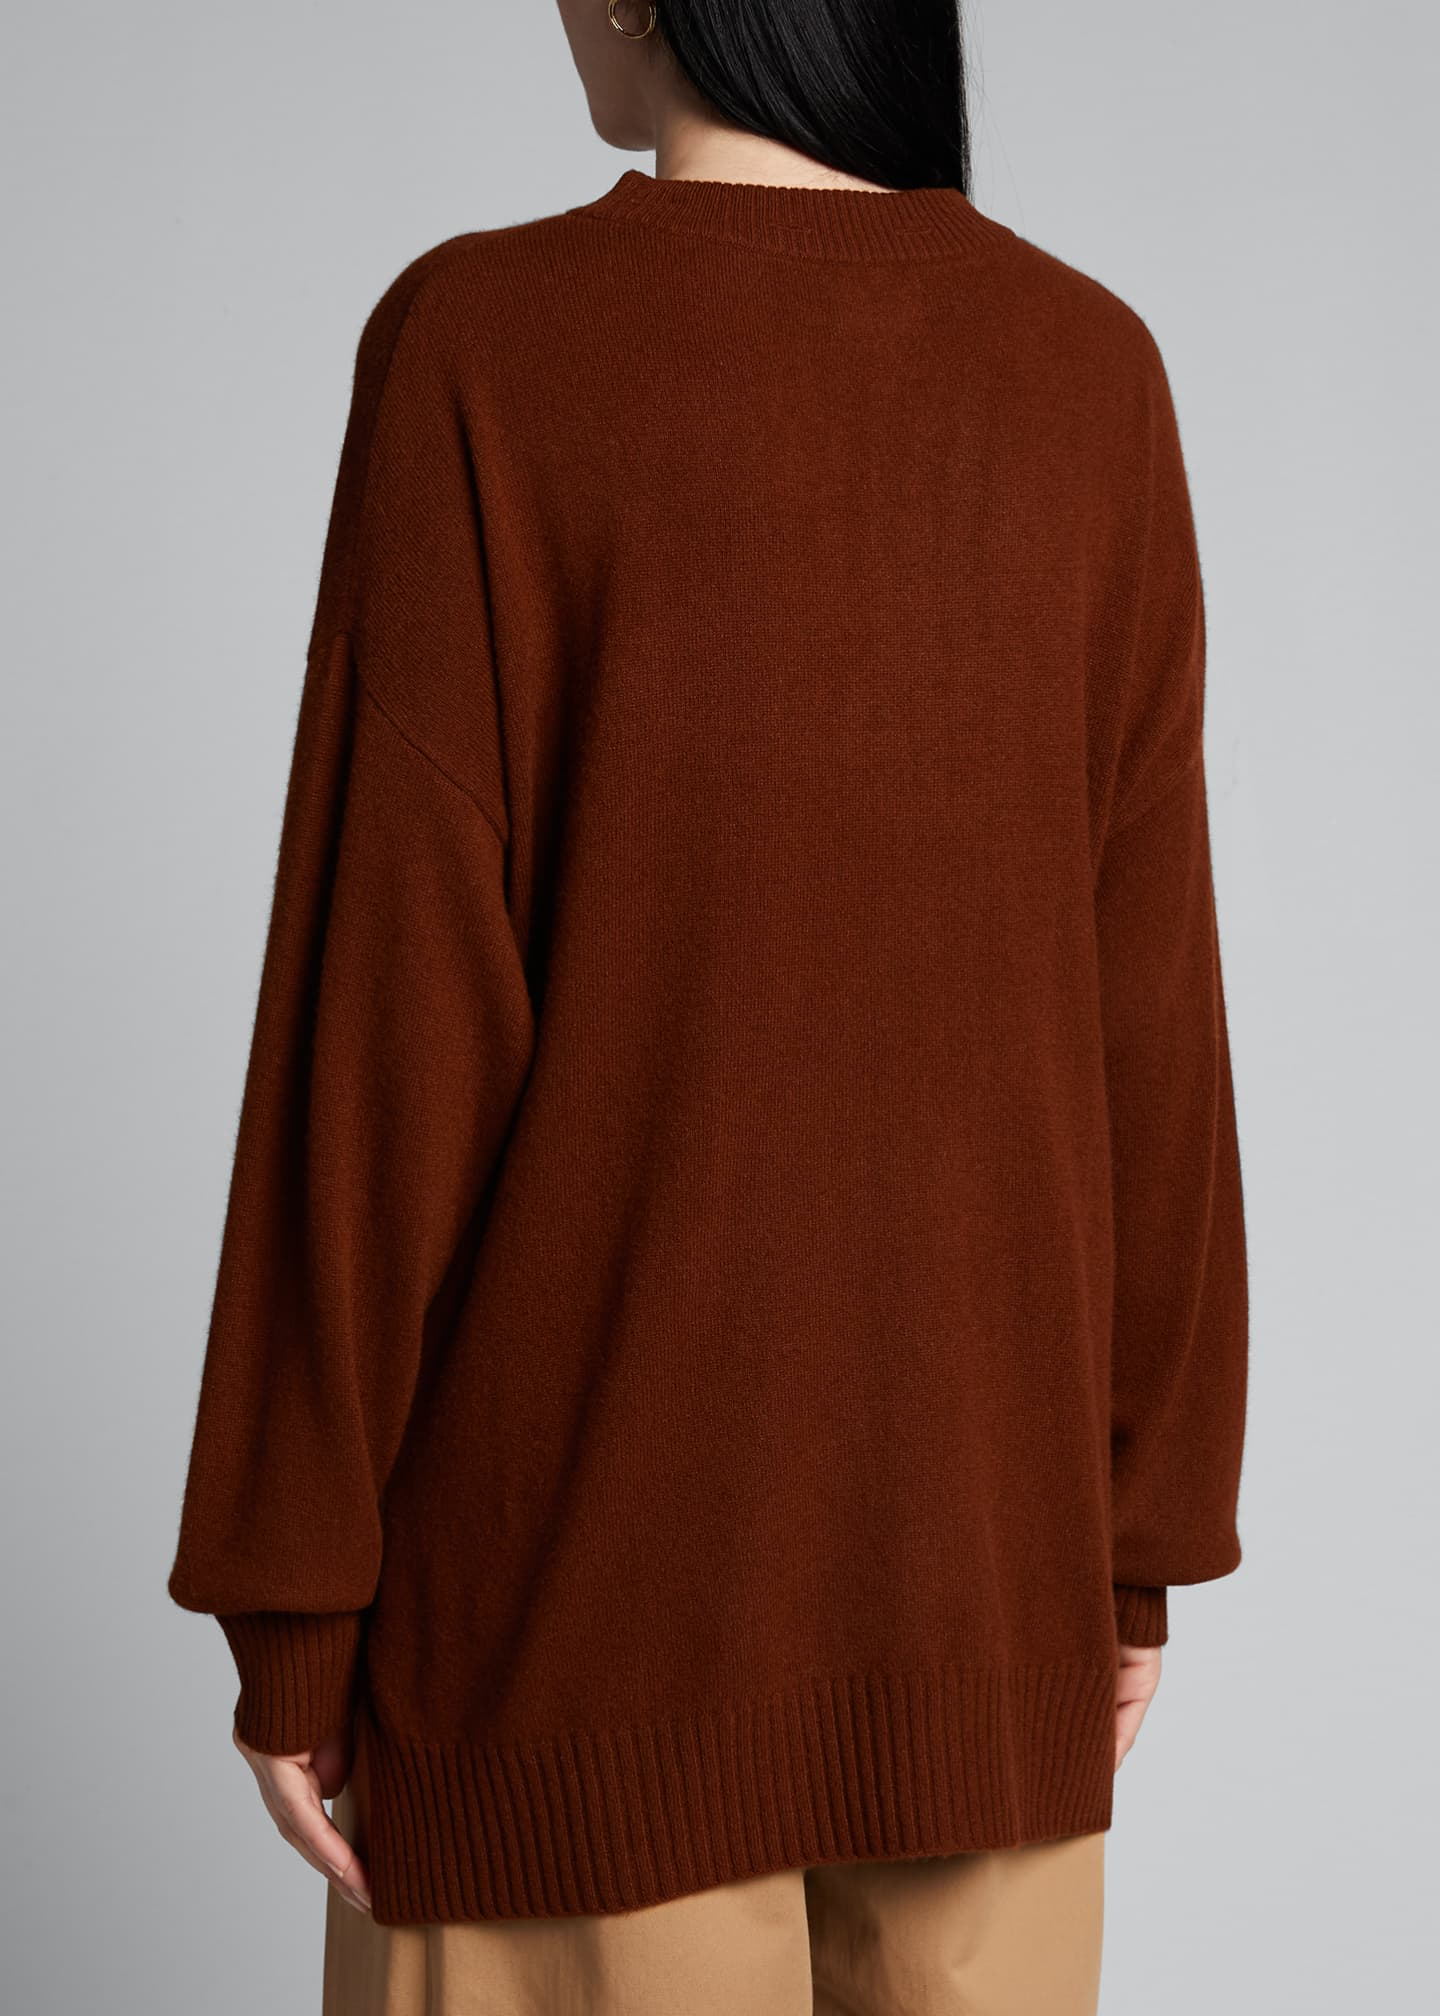 Image 2 of 5: Cashmere Crewneck Sweater